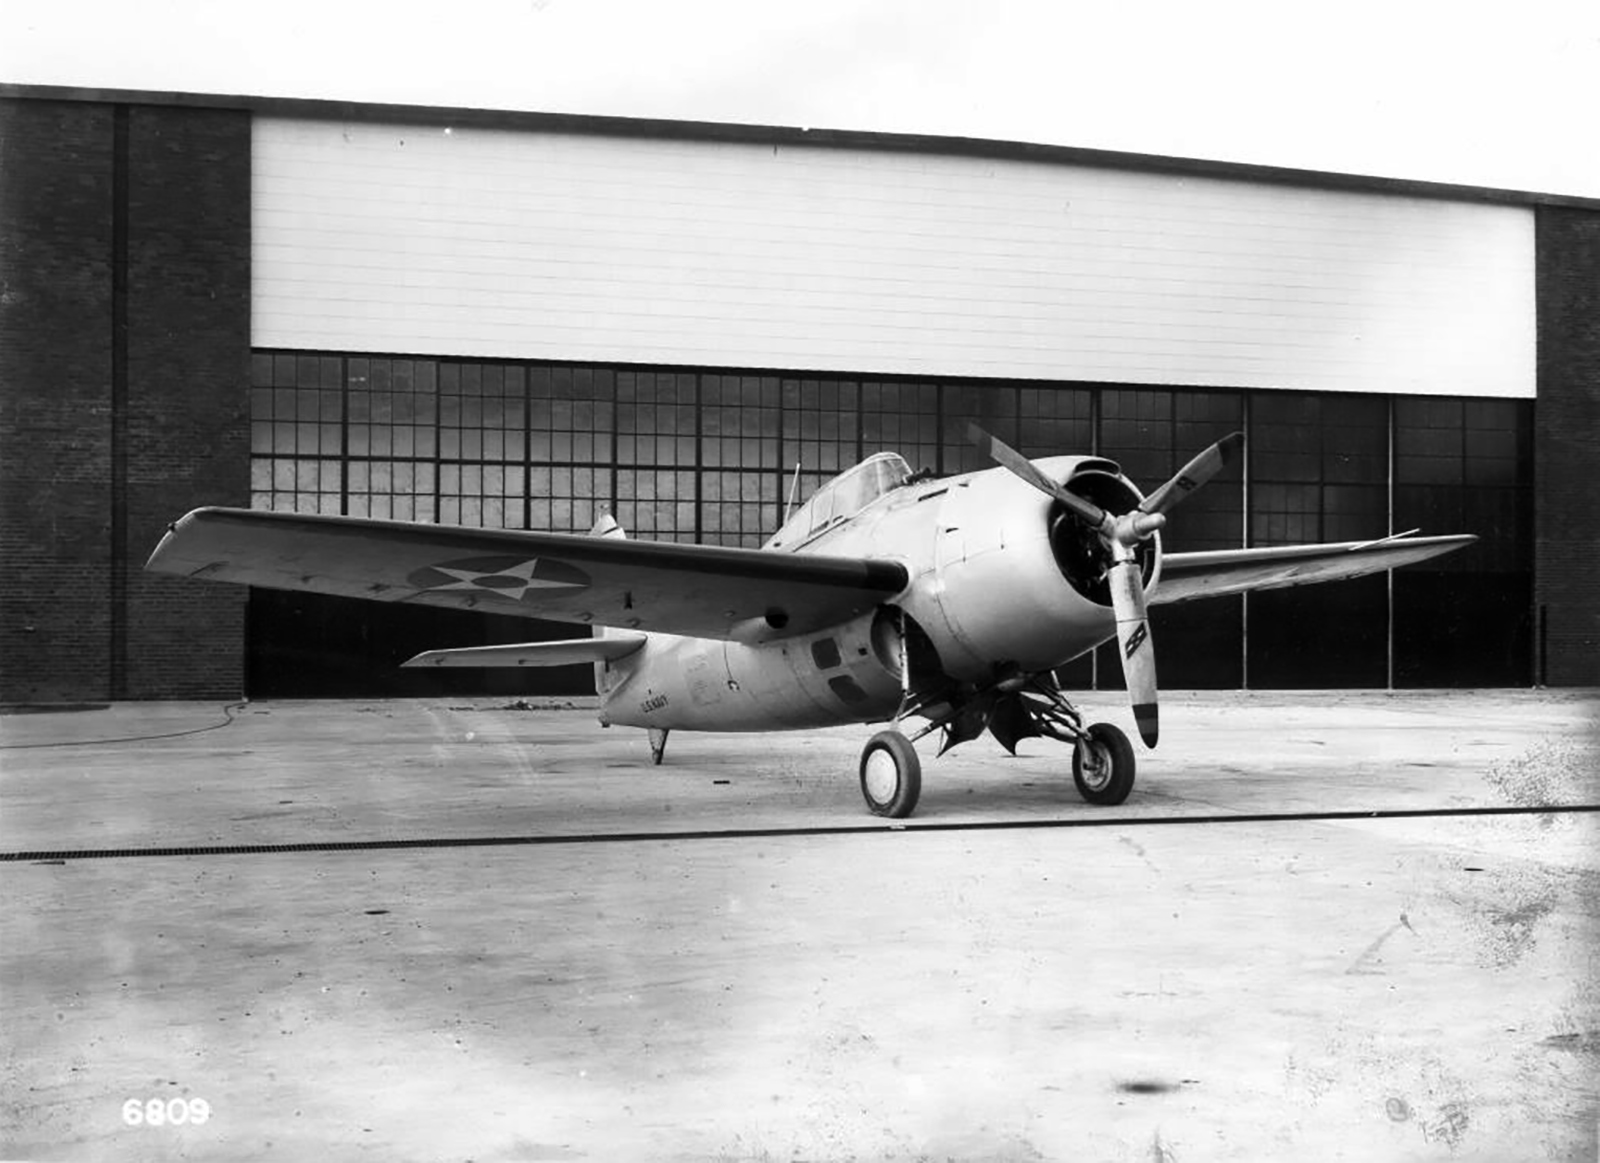 Grumman XF4F 3 Wildcat at Grumman Aircraft Engineering Corporation Bethpage New York 01